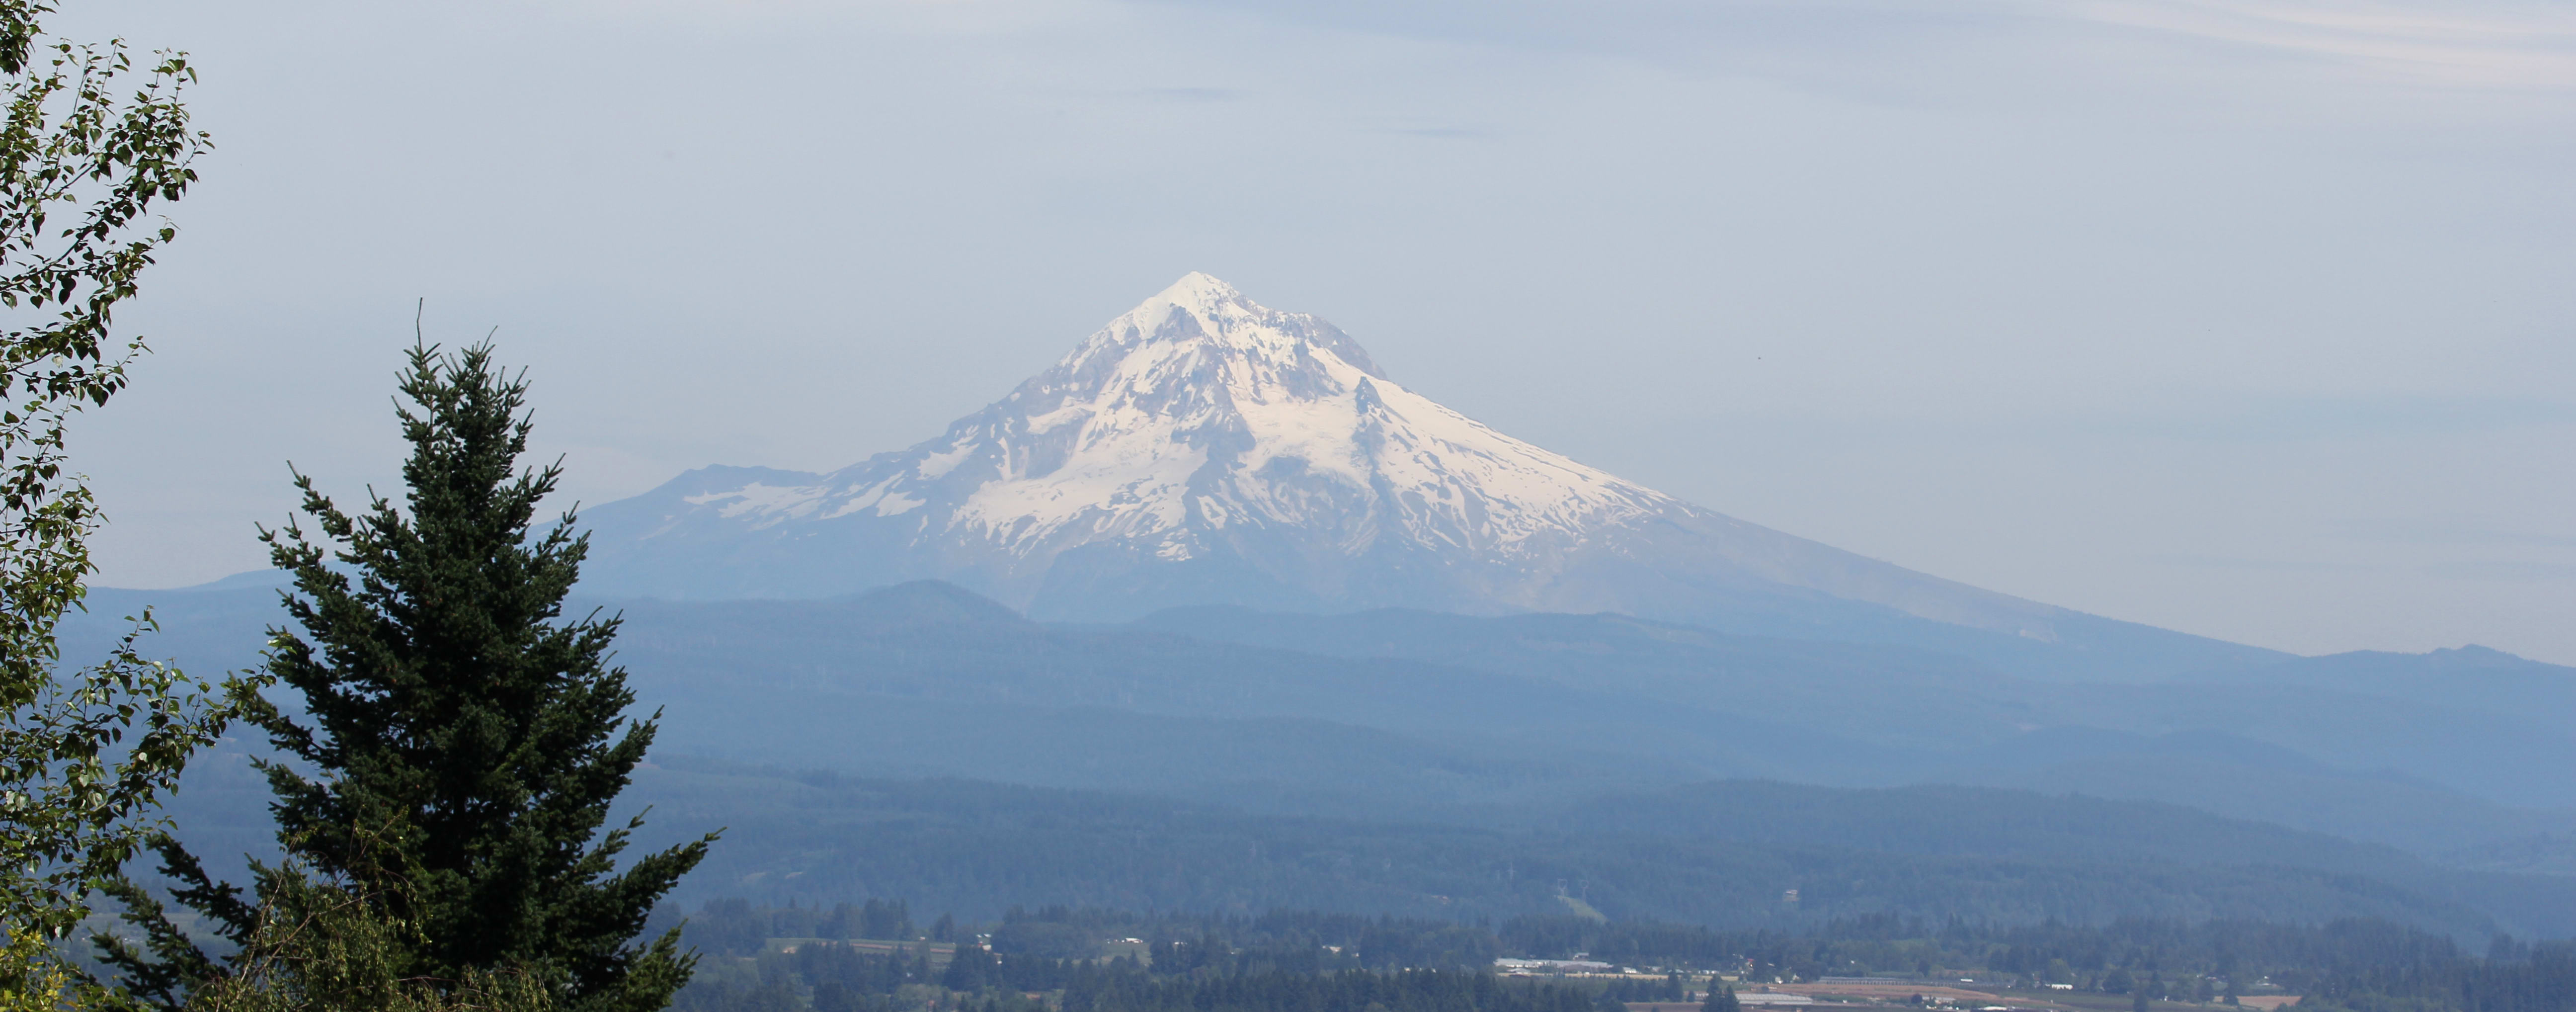 Mount-Hood-view-from-Hogan-Butte-w5184.jpg